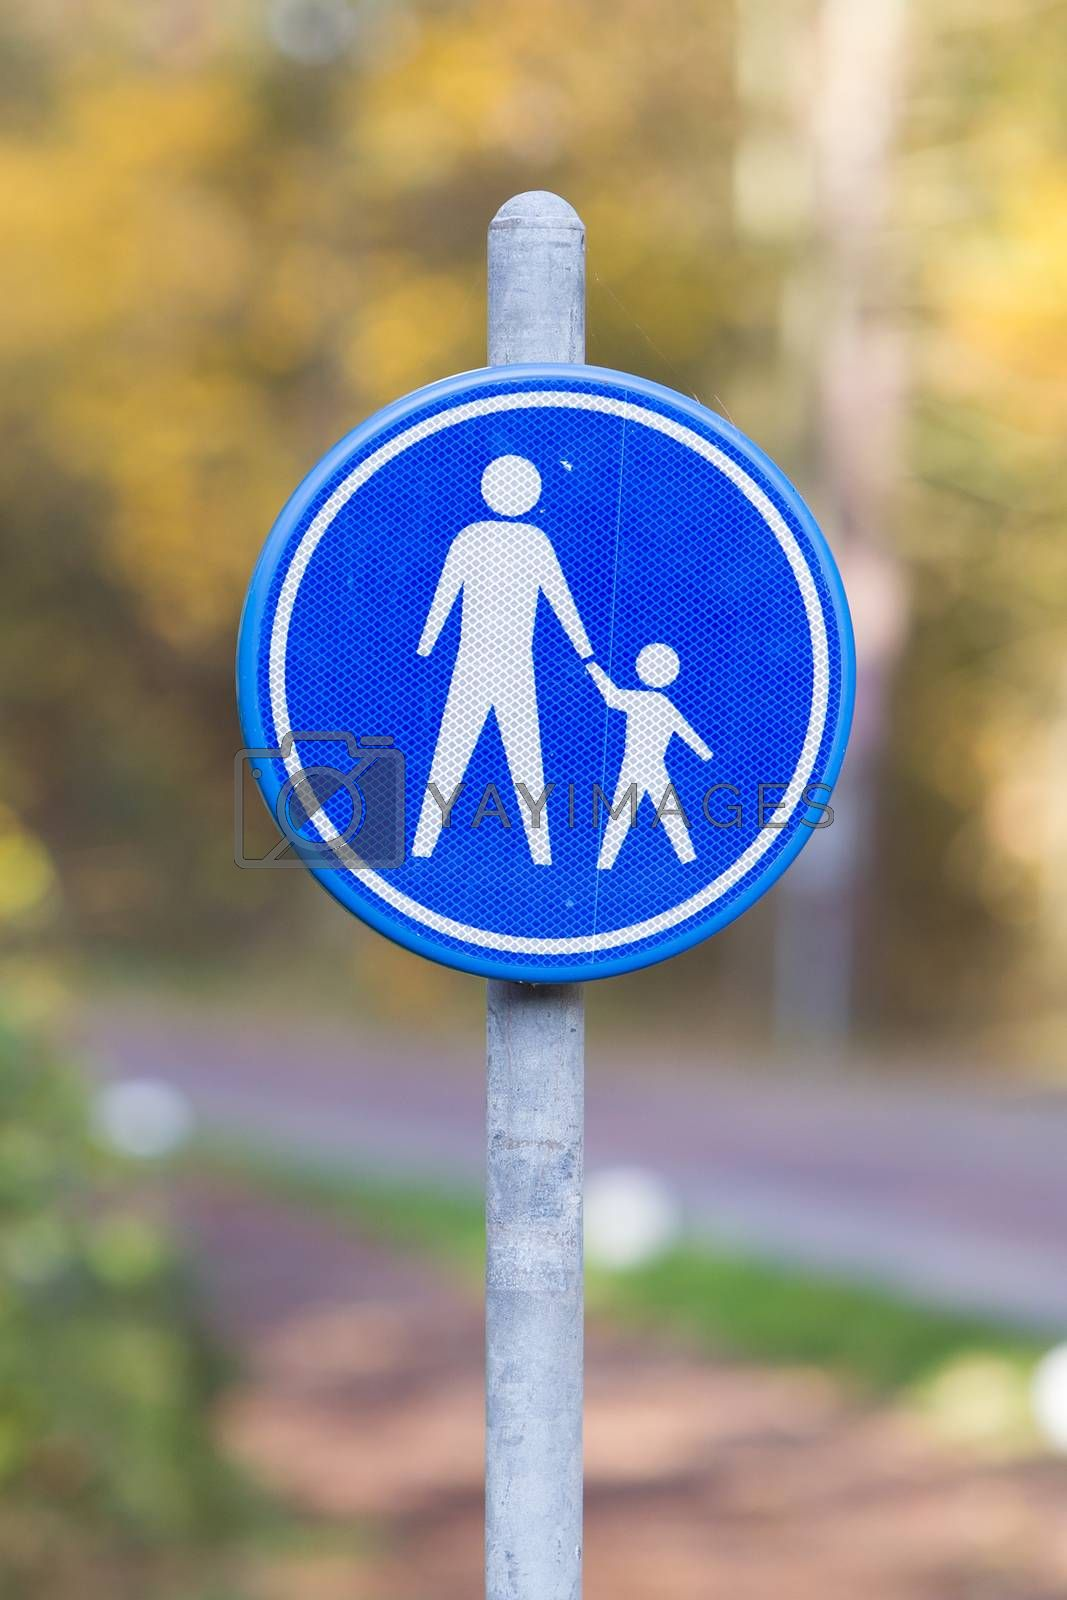 Pedestrian with children on road sign, the Netherlands